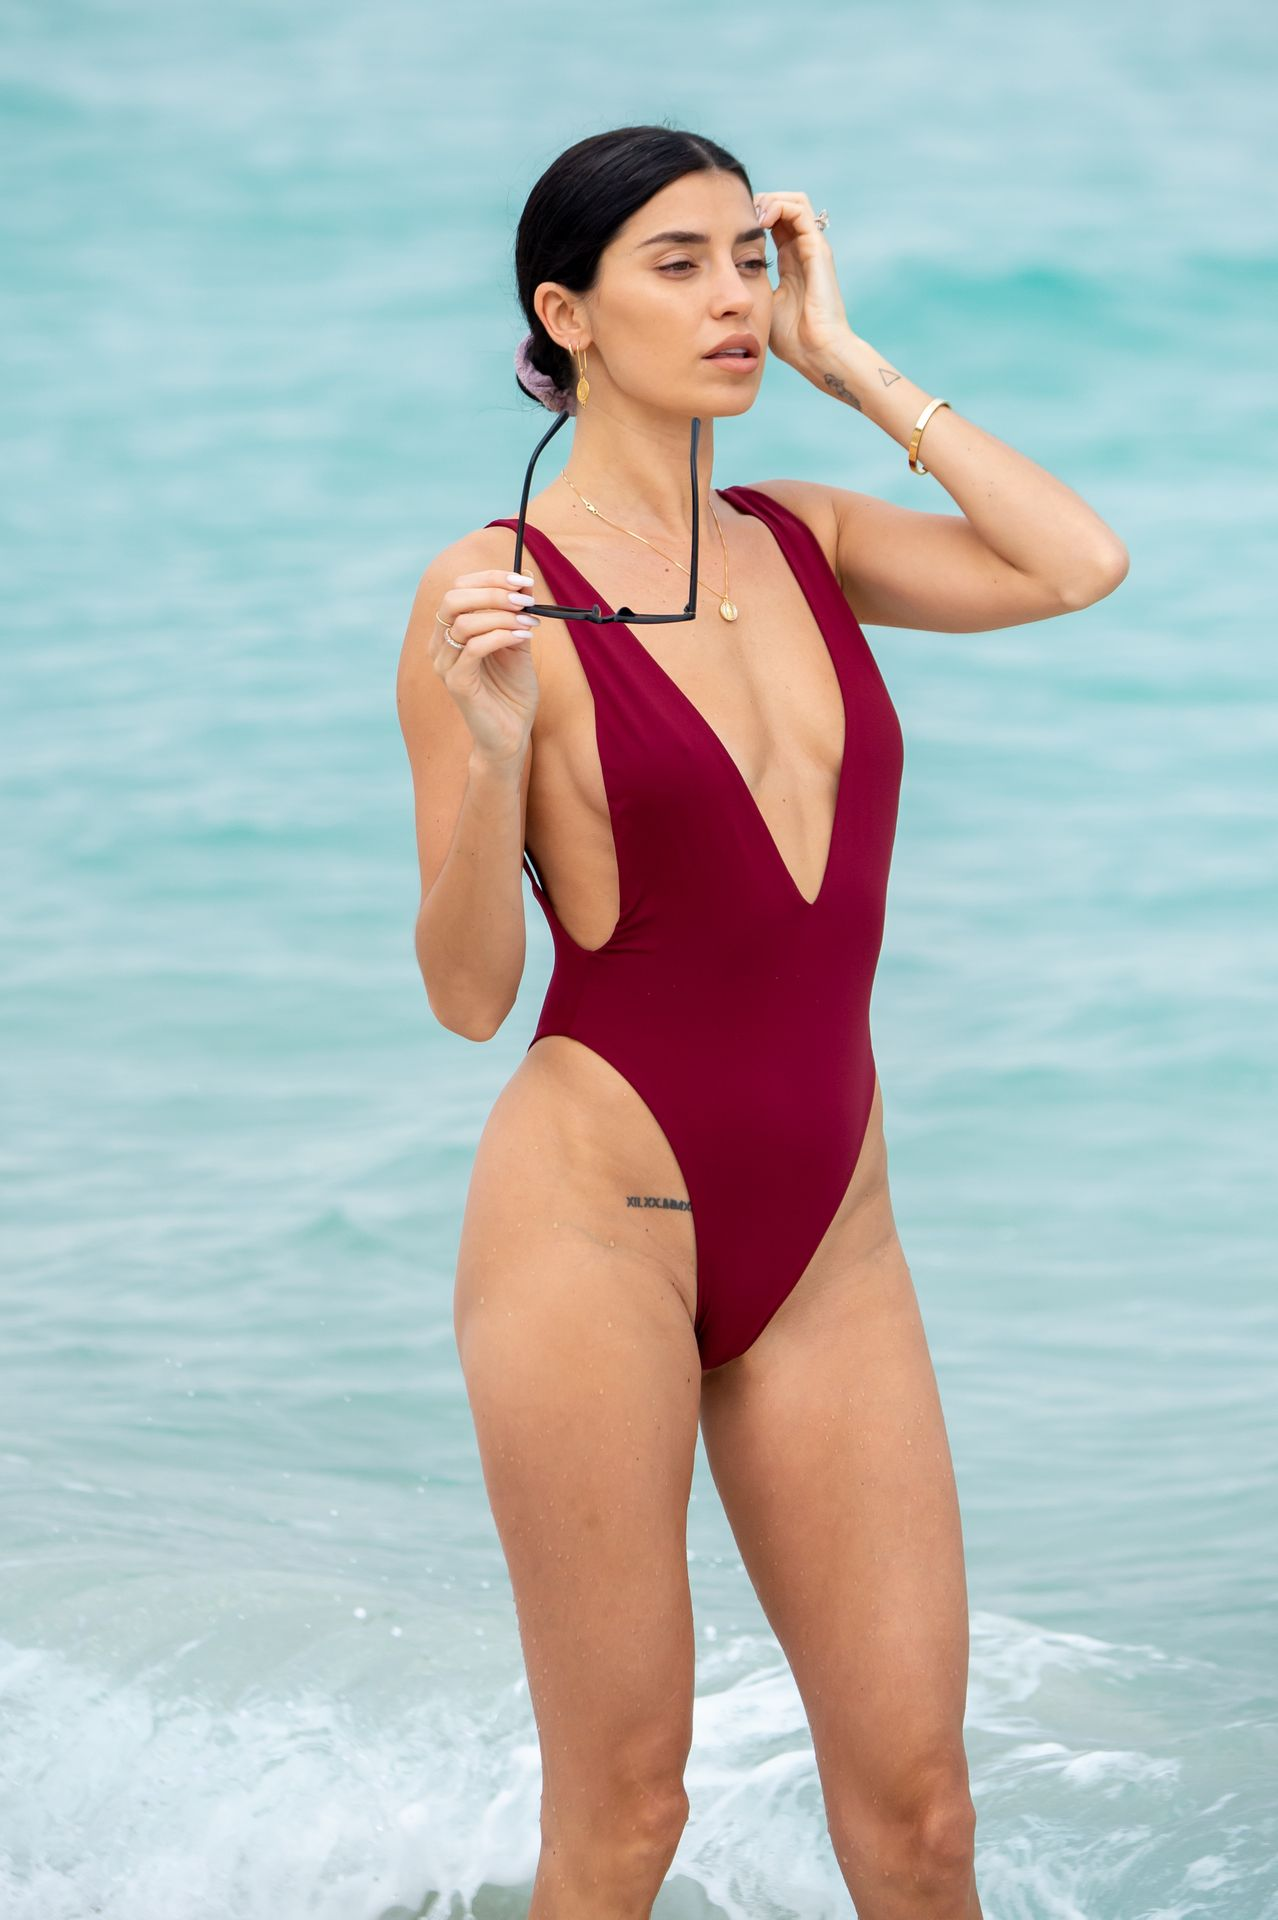 Nicole Williams Shows Off Her Amazing Curves In Miami 0019